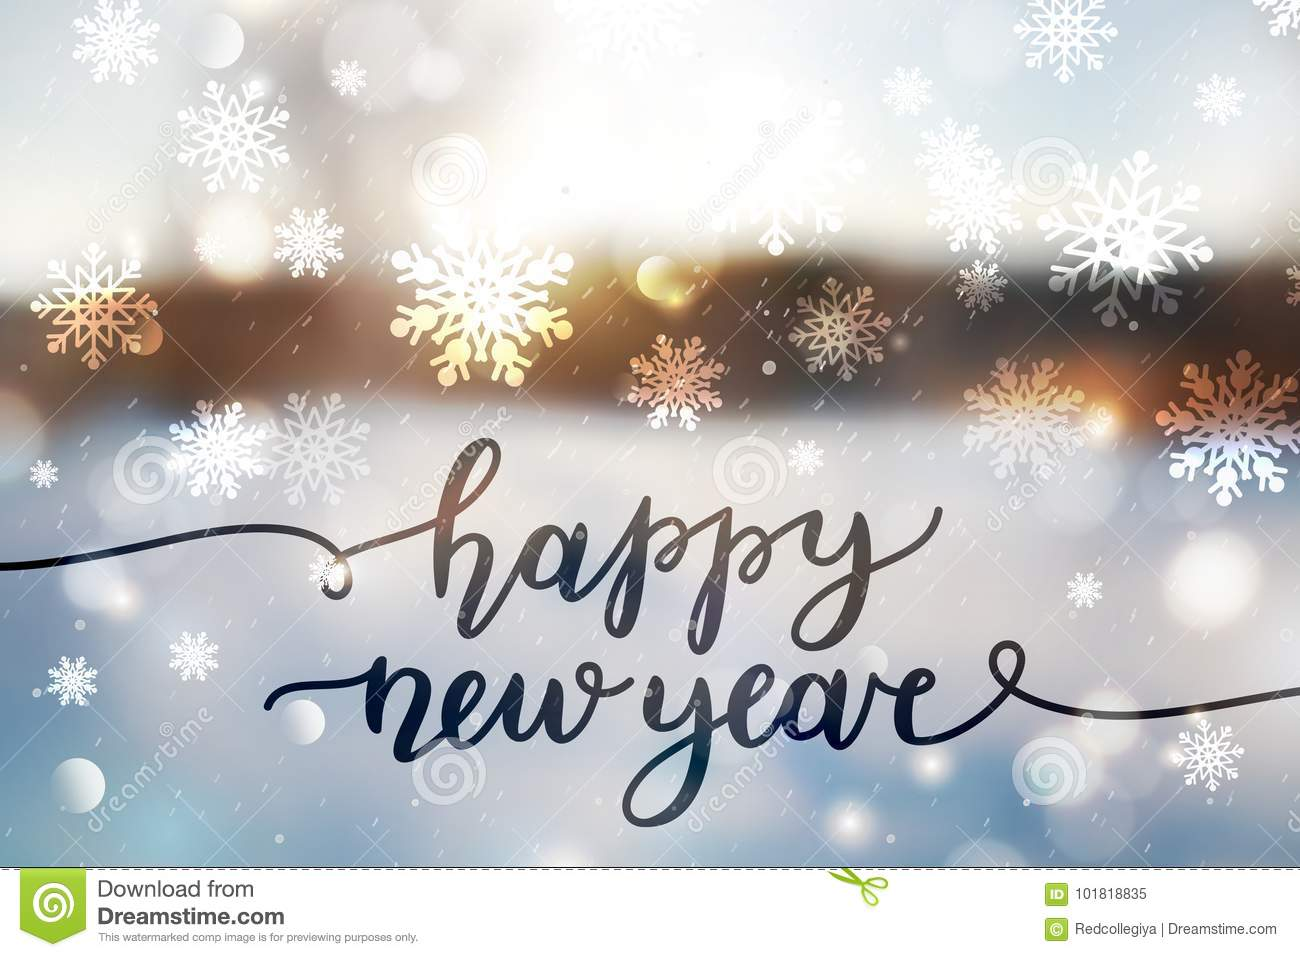 Happy new year lettering stock image. Image of christmas - 101818835